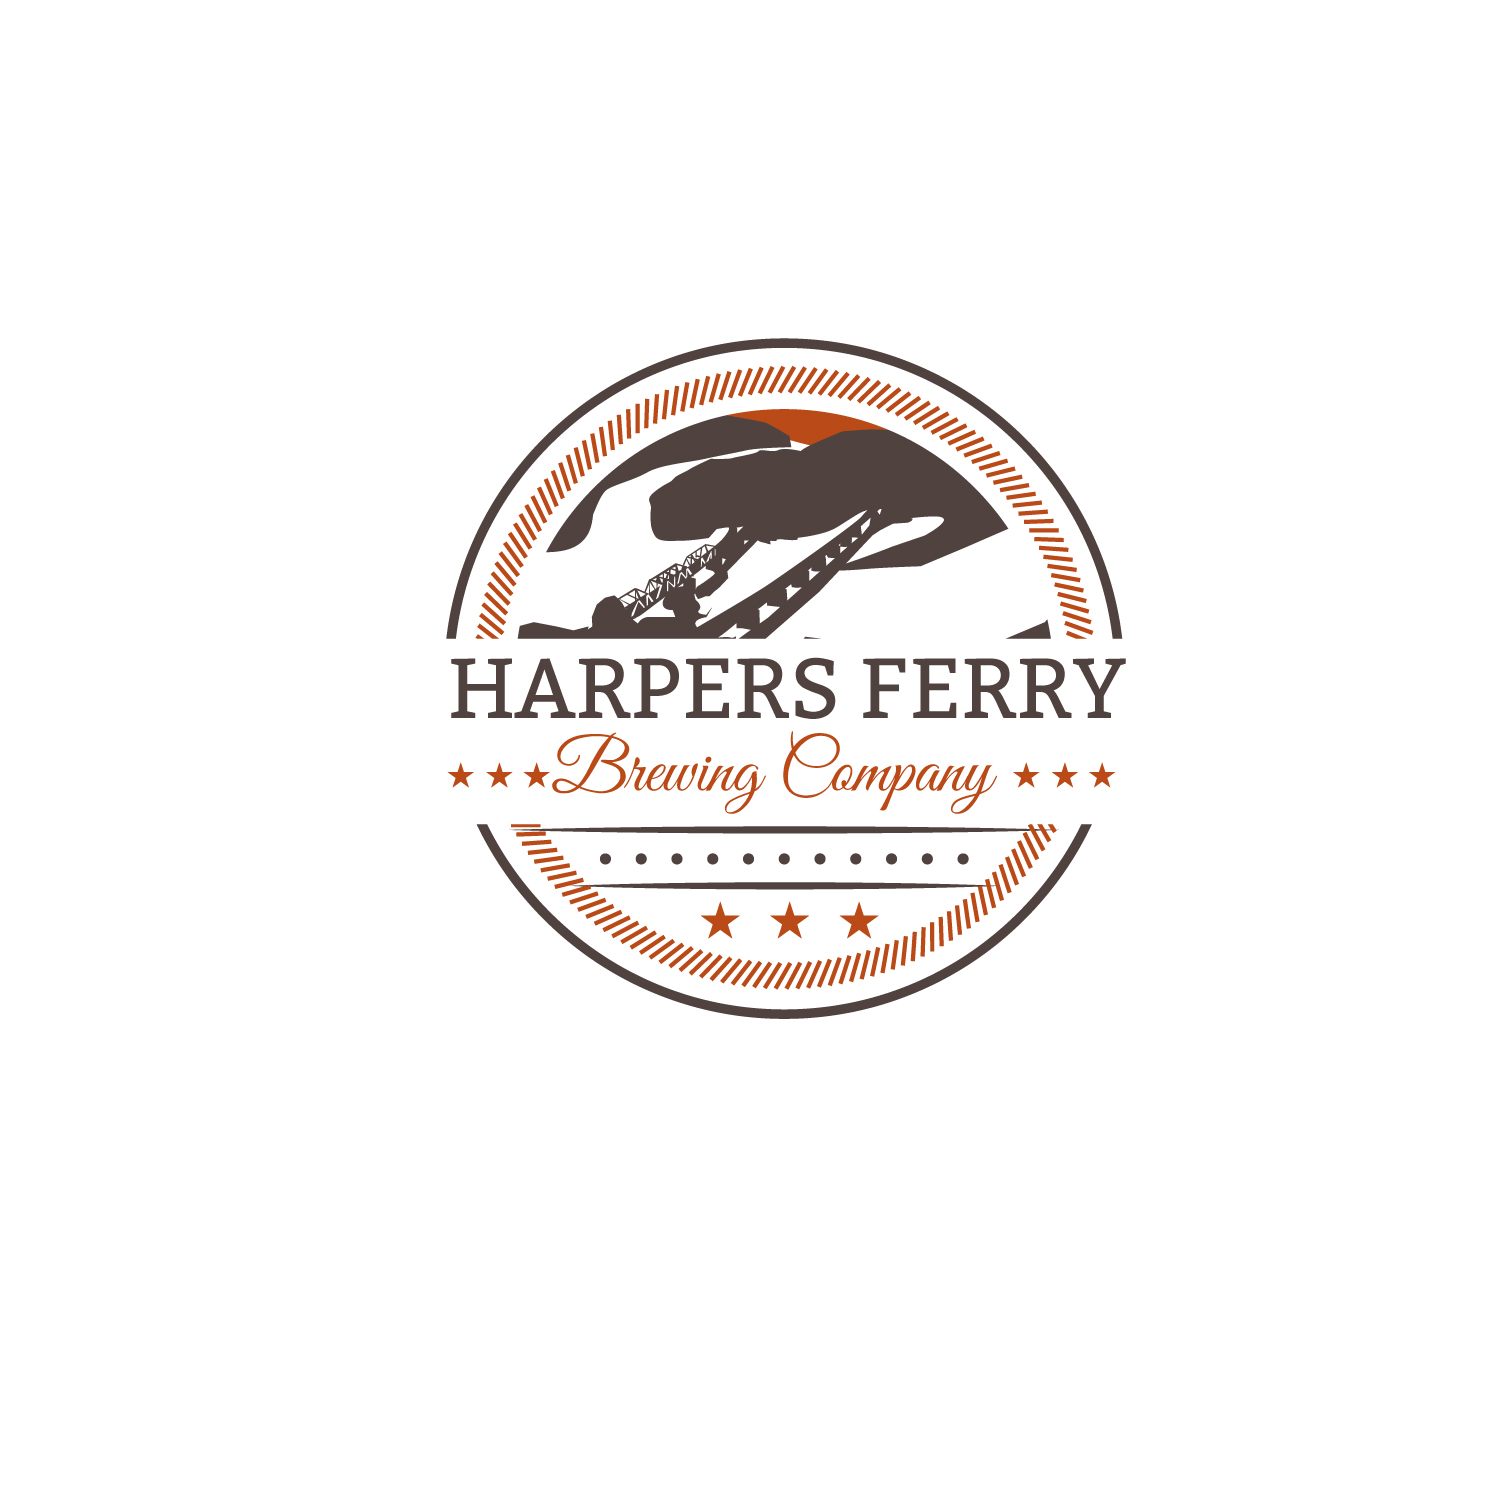 Logo Design by Bac Huu - Entry No. 16 in the Logo Design Contest Unique Logo Design Wanted for Harpers ferry brewing company.